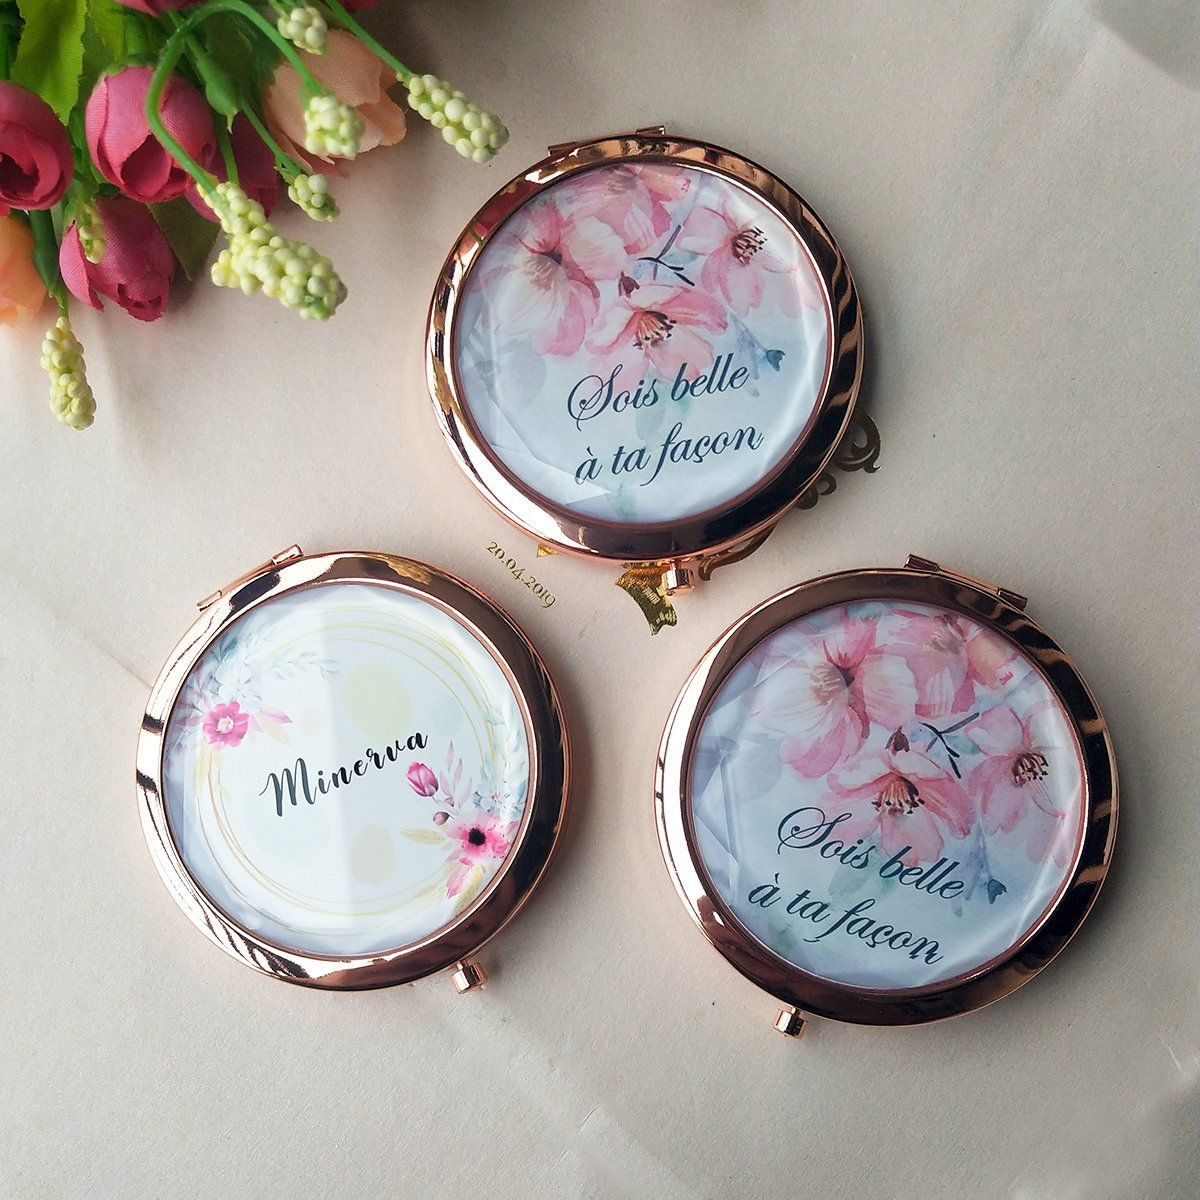 Compact Mirror Bridesmaid Gifts Mirror Bachelorette Party Favors By Janecustomgift Bridesmaid Gift Mirror Bachelorette Party Favors Tropical Bachelorette Party